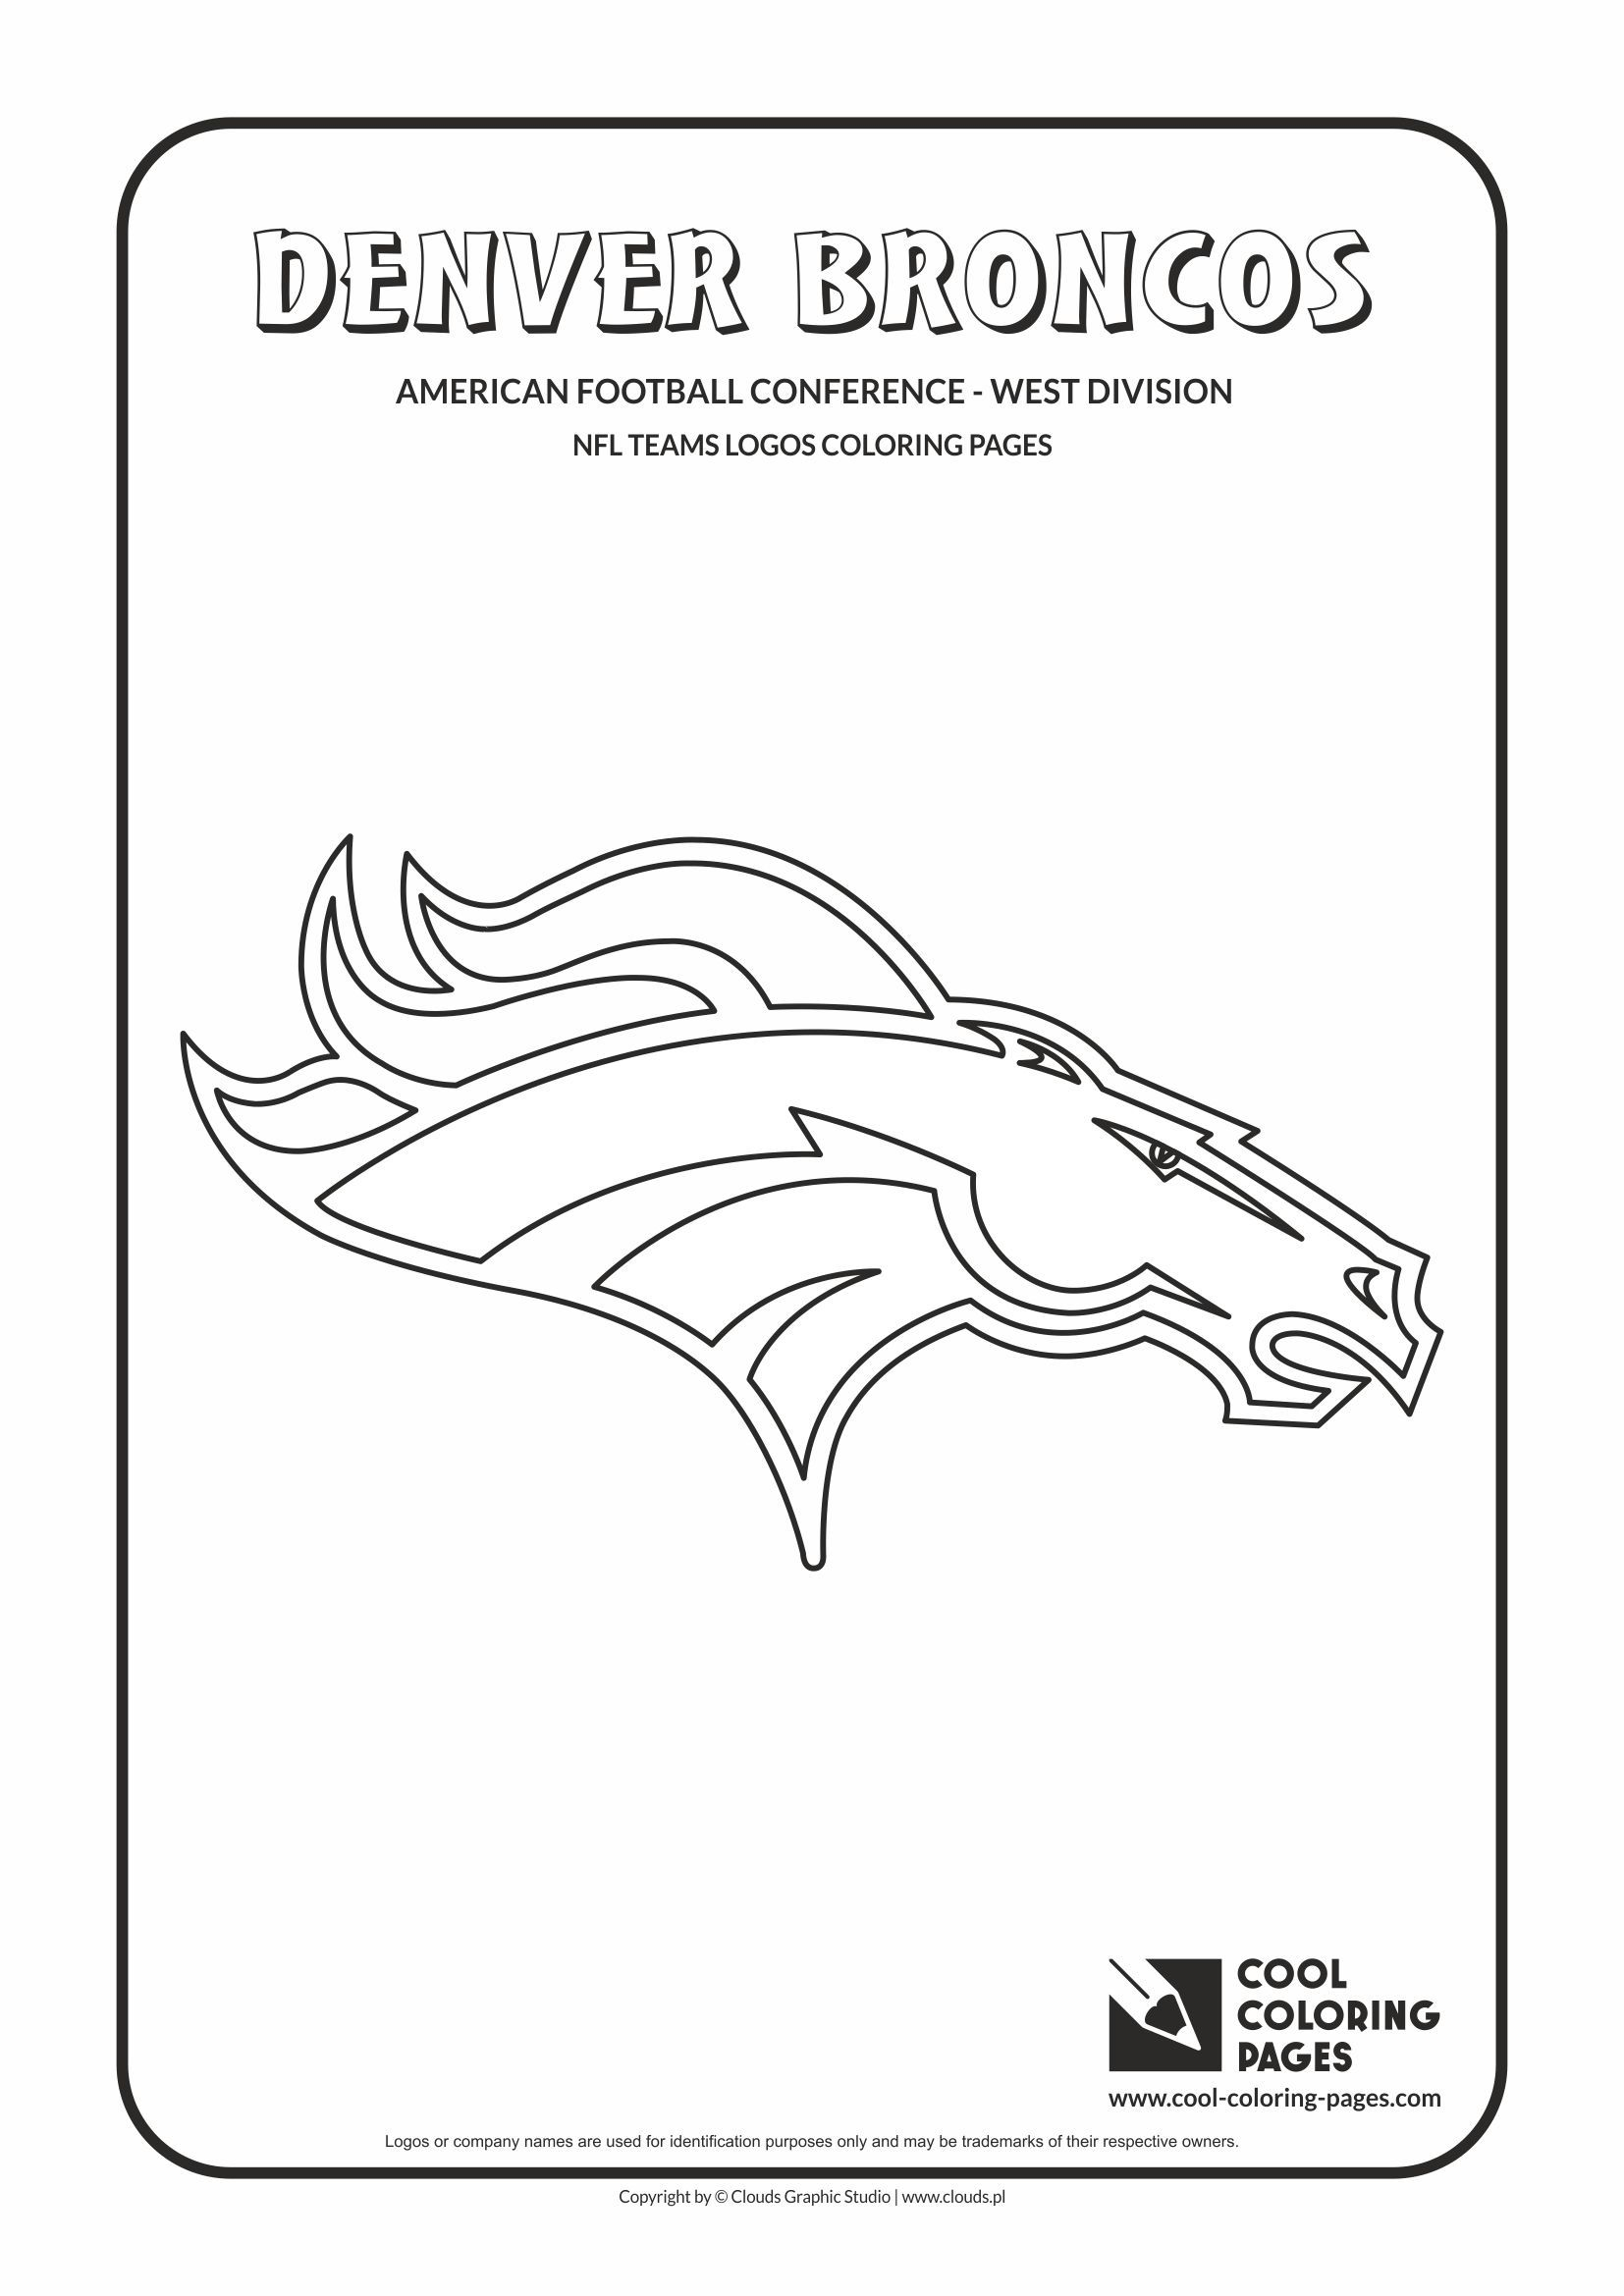 Denver Broncos Nfl American Football Teams Logos Coloring Pages